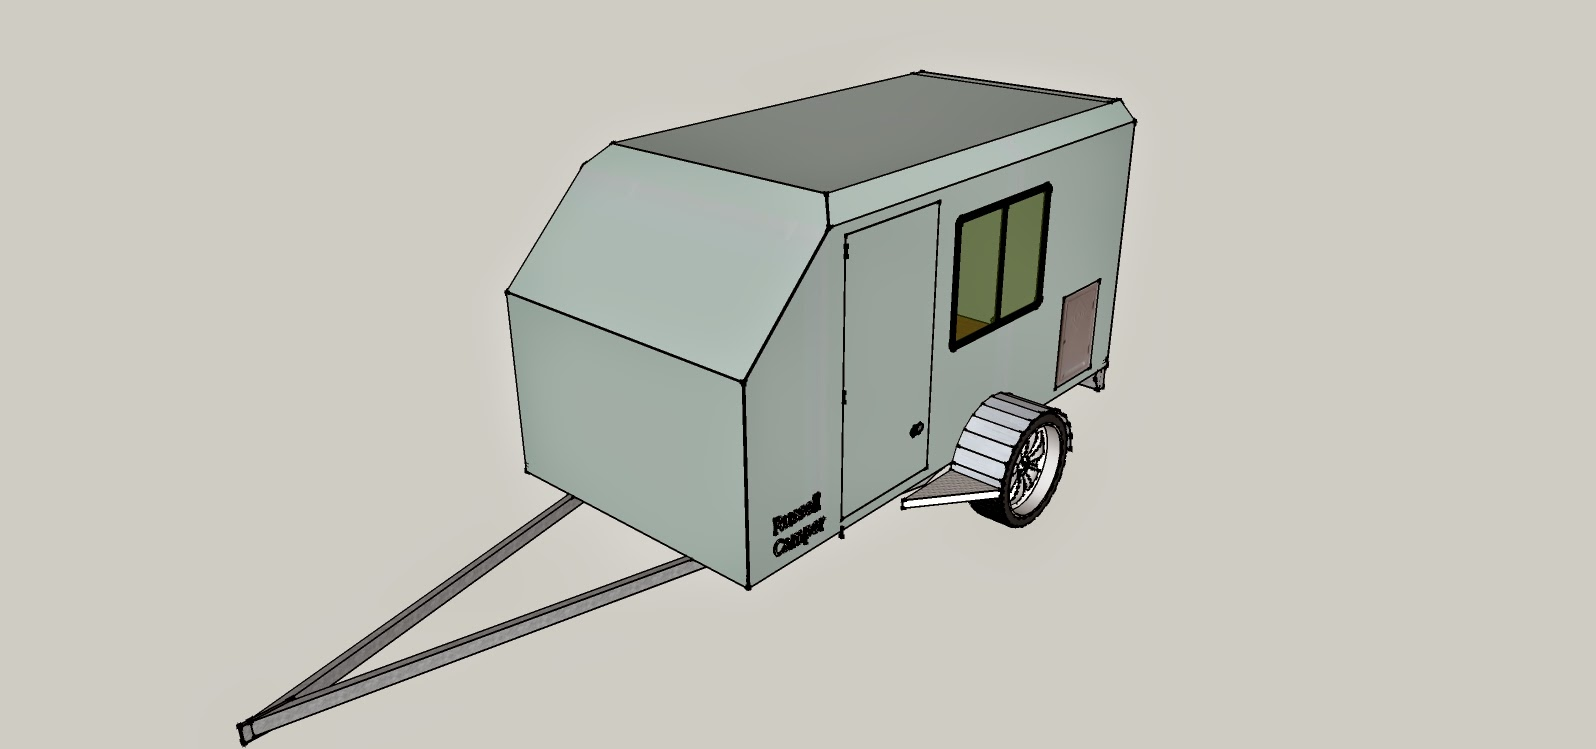 Mike\'s Camper Trailer: Intro, Construction of Trailer and Frame ...